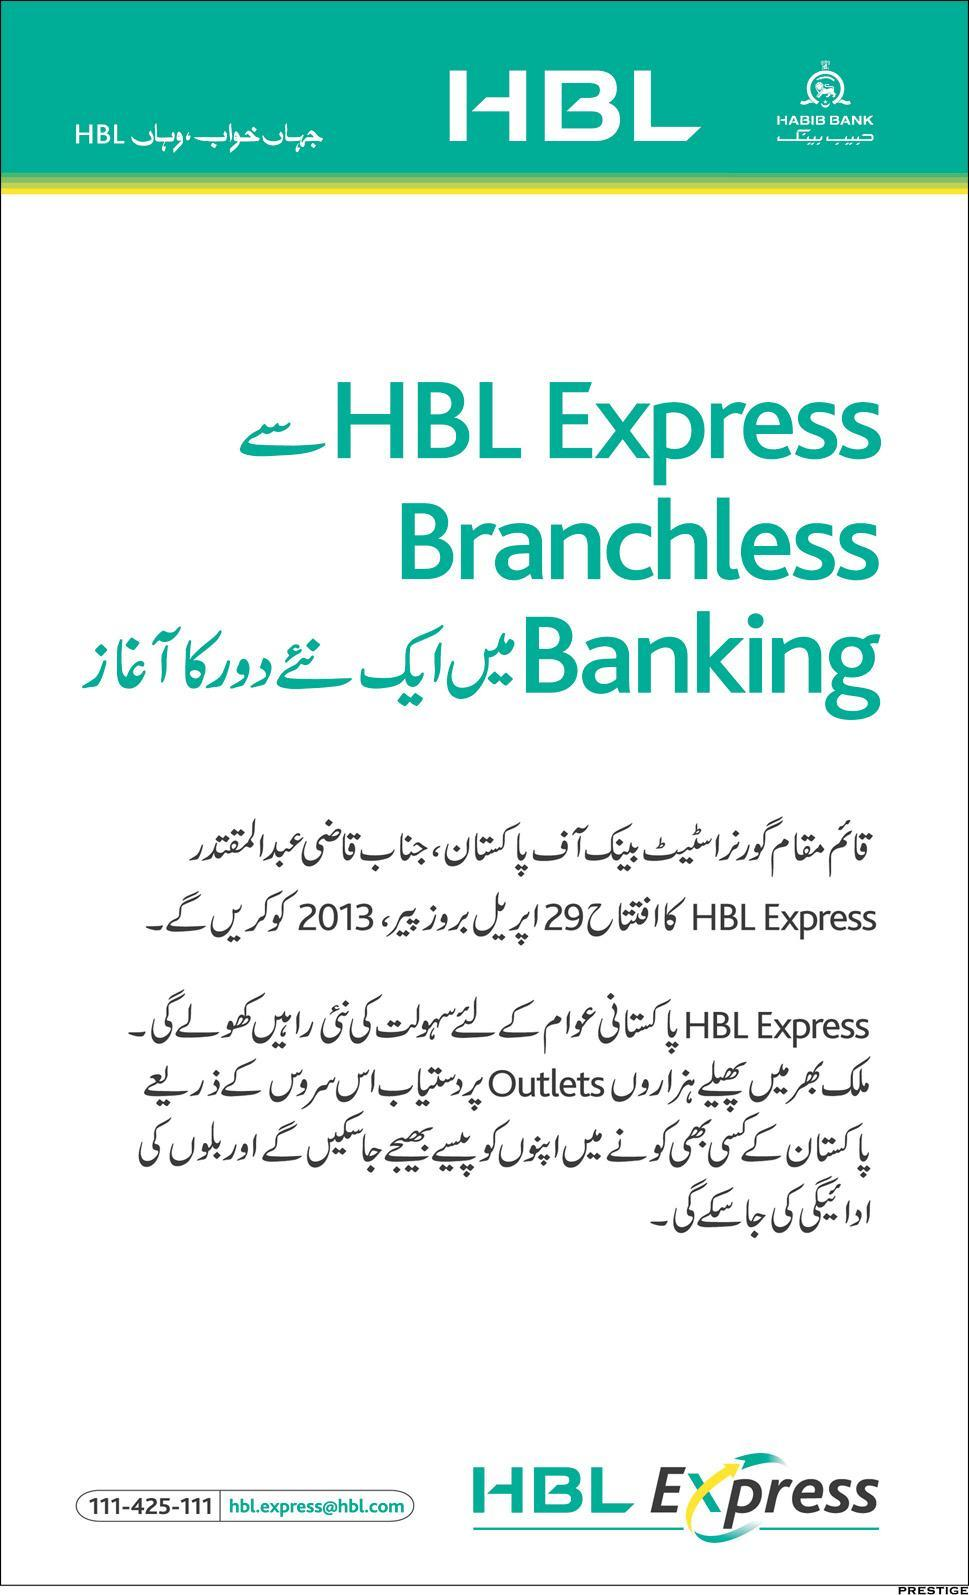 HBL Bank Brings Express Branchless Banking in Pakistan Job in Allied Bank Job, ABL Careers, Tellers Position 2013